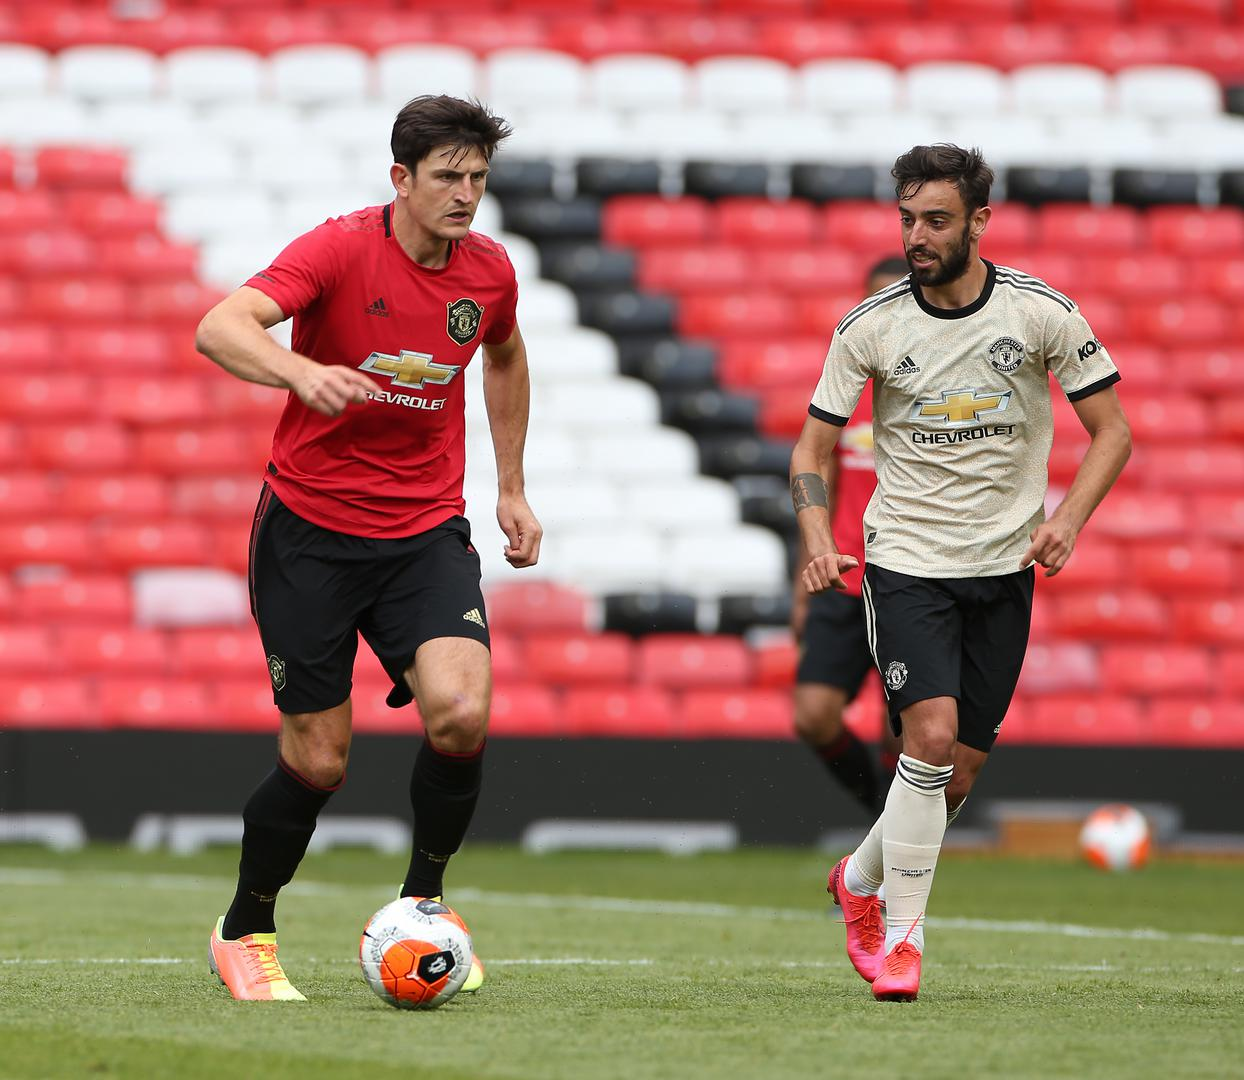 Harry Maguire on the ball, watched by Bruno Fernandes